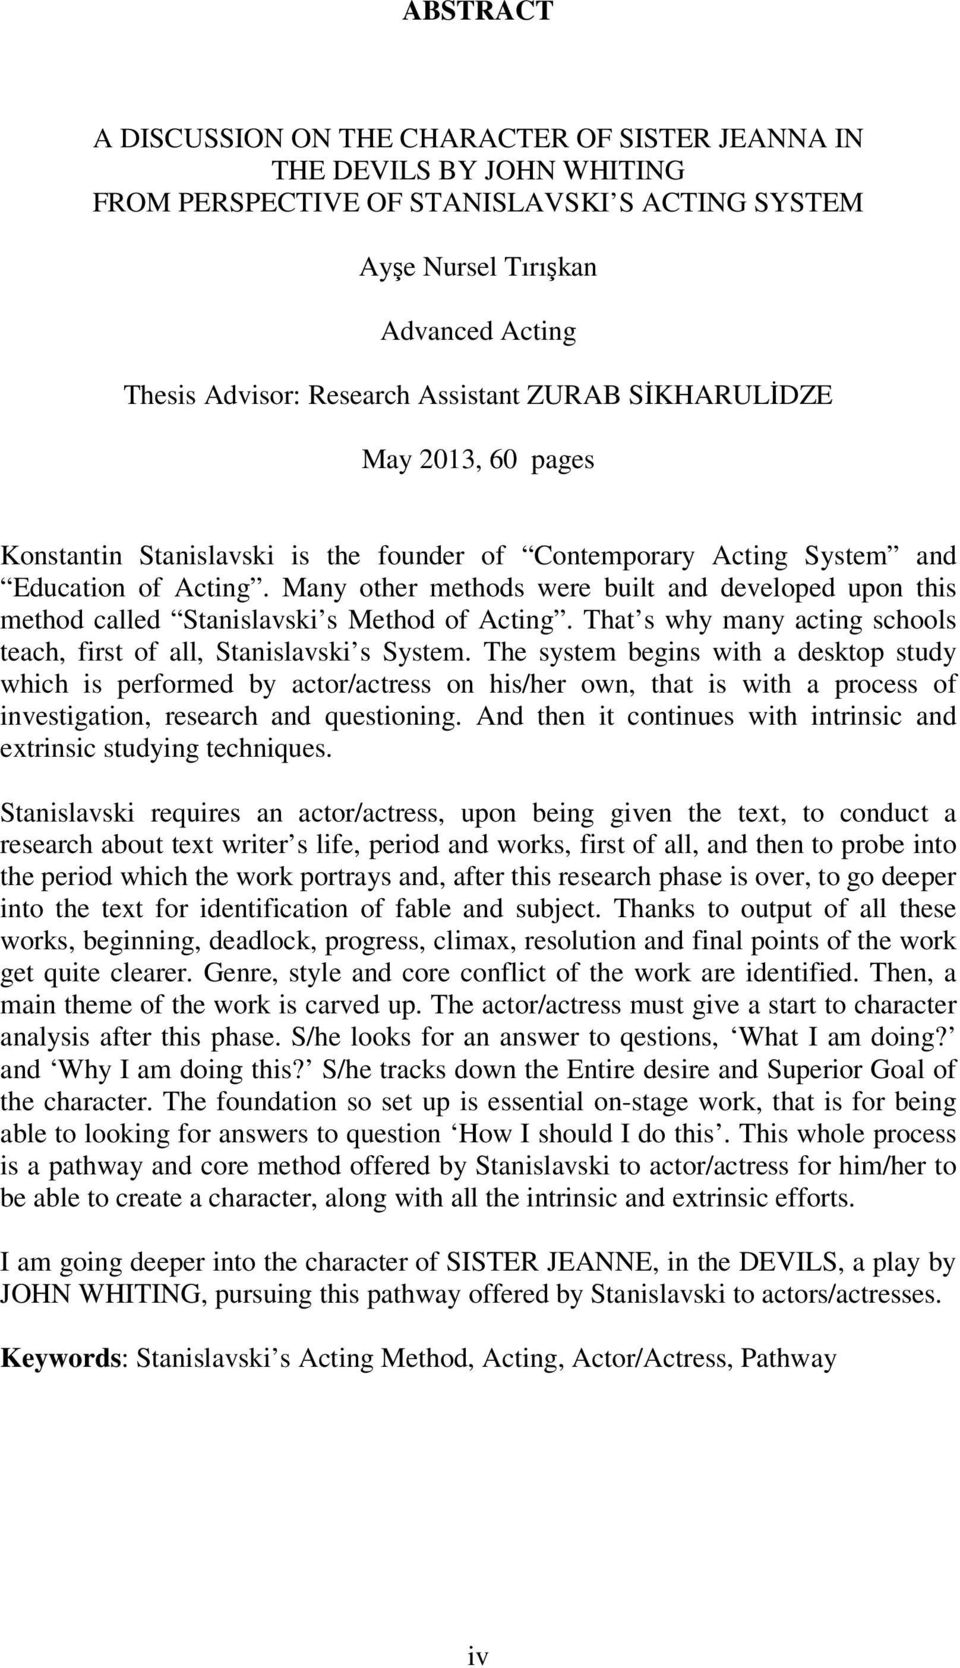 Many other methods were built and developed upon this method called Stanislavski s Method of Acting. That s why many acting schools teach, first of all, Stanislavski s System.